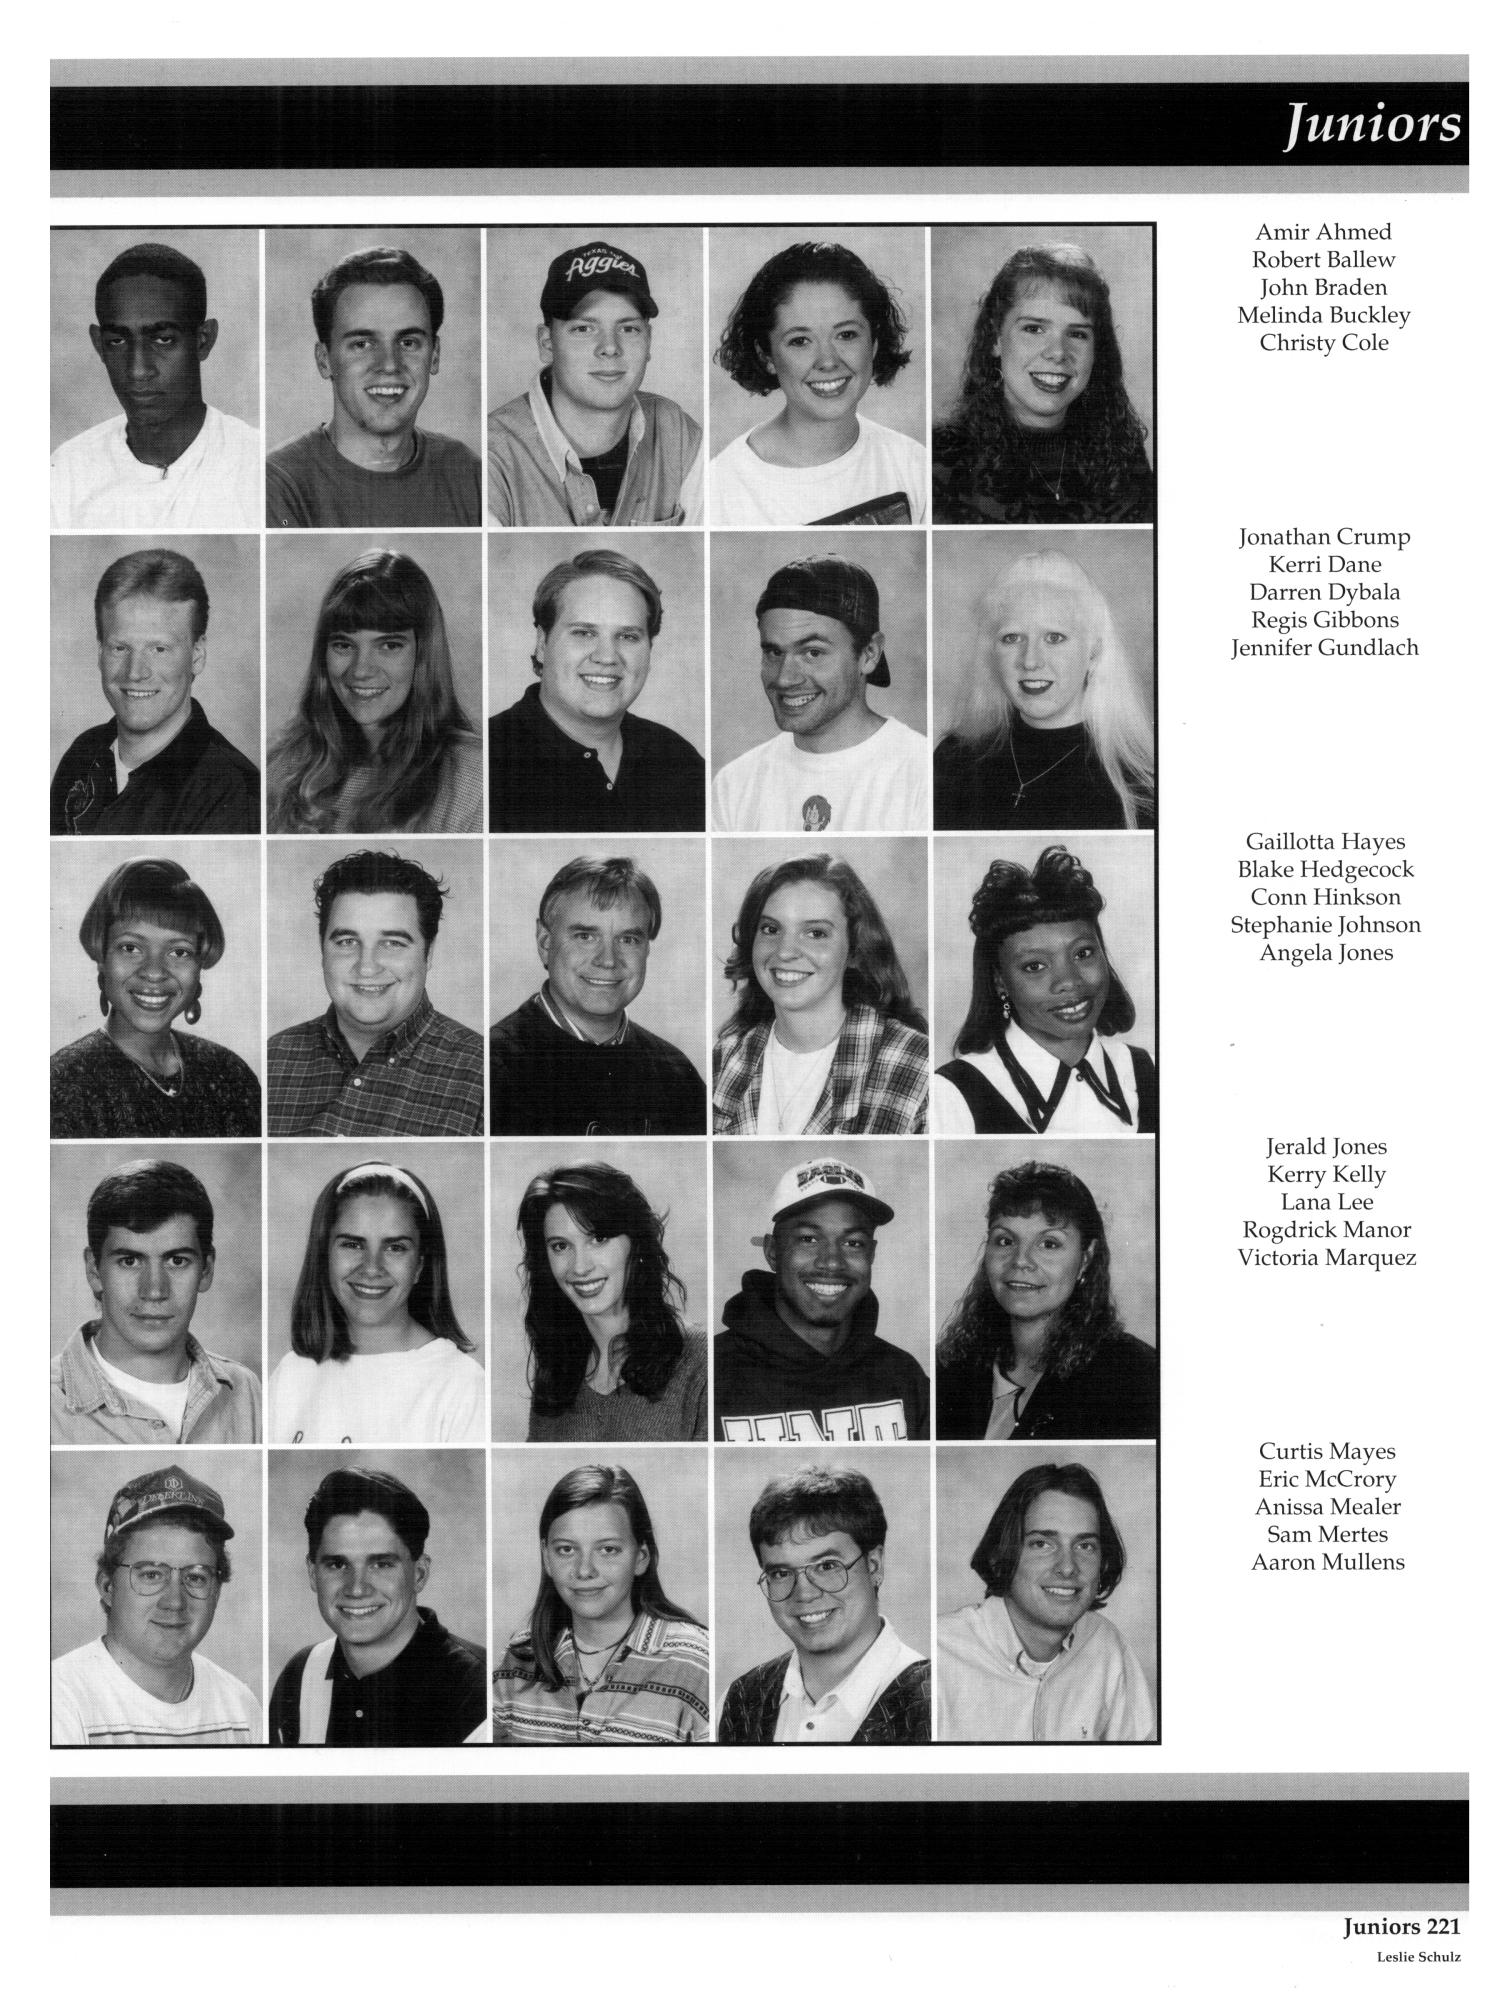 The aerie yearbook of university of north texas 1995 page 44 unt - The Aerie Yearbook Of University Of North Texas 1995 Page 221 Digital Library